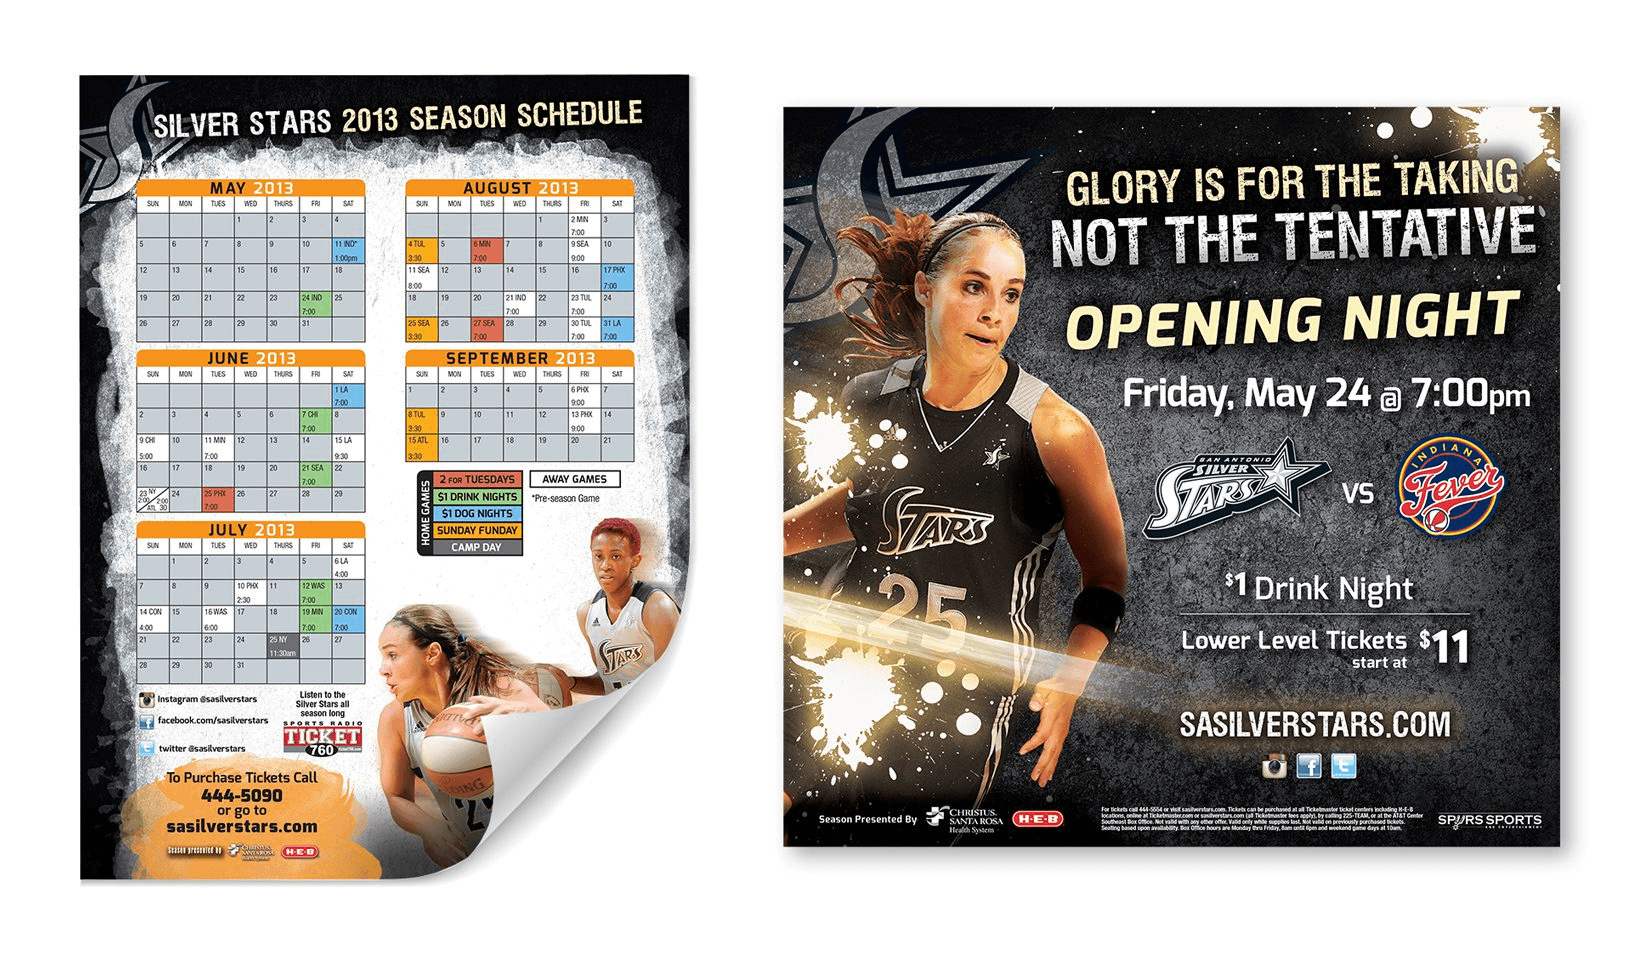 Silver Stars Schedule and Ad